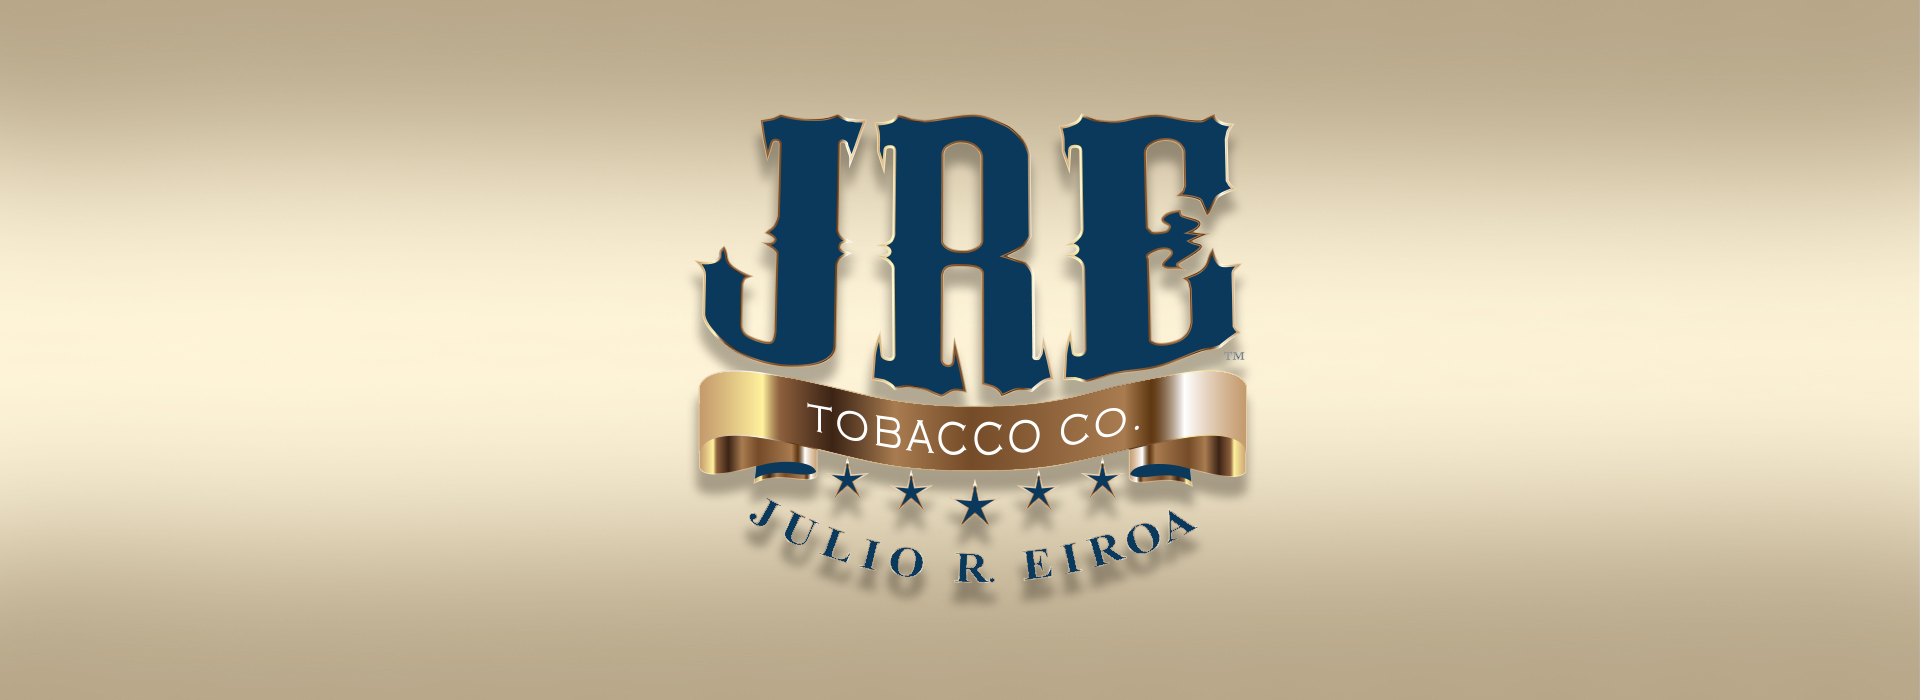 jre-tobacco-roll1